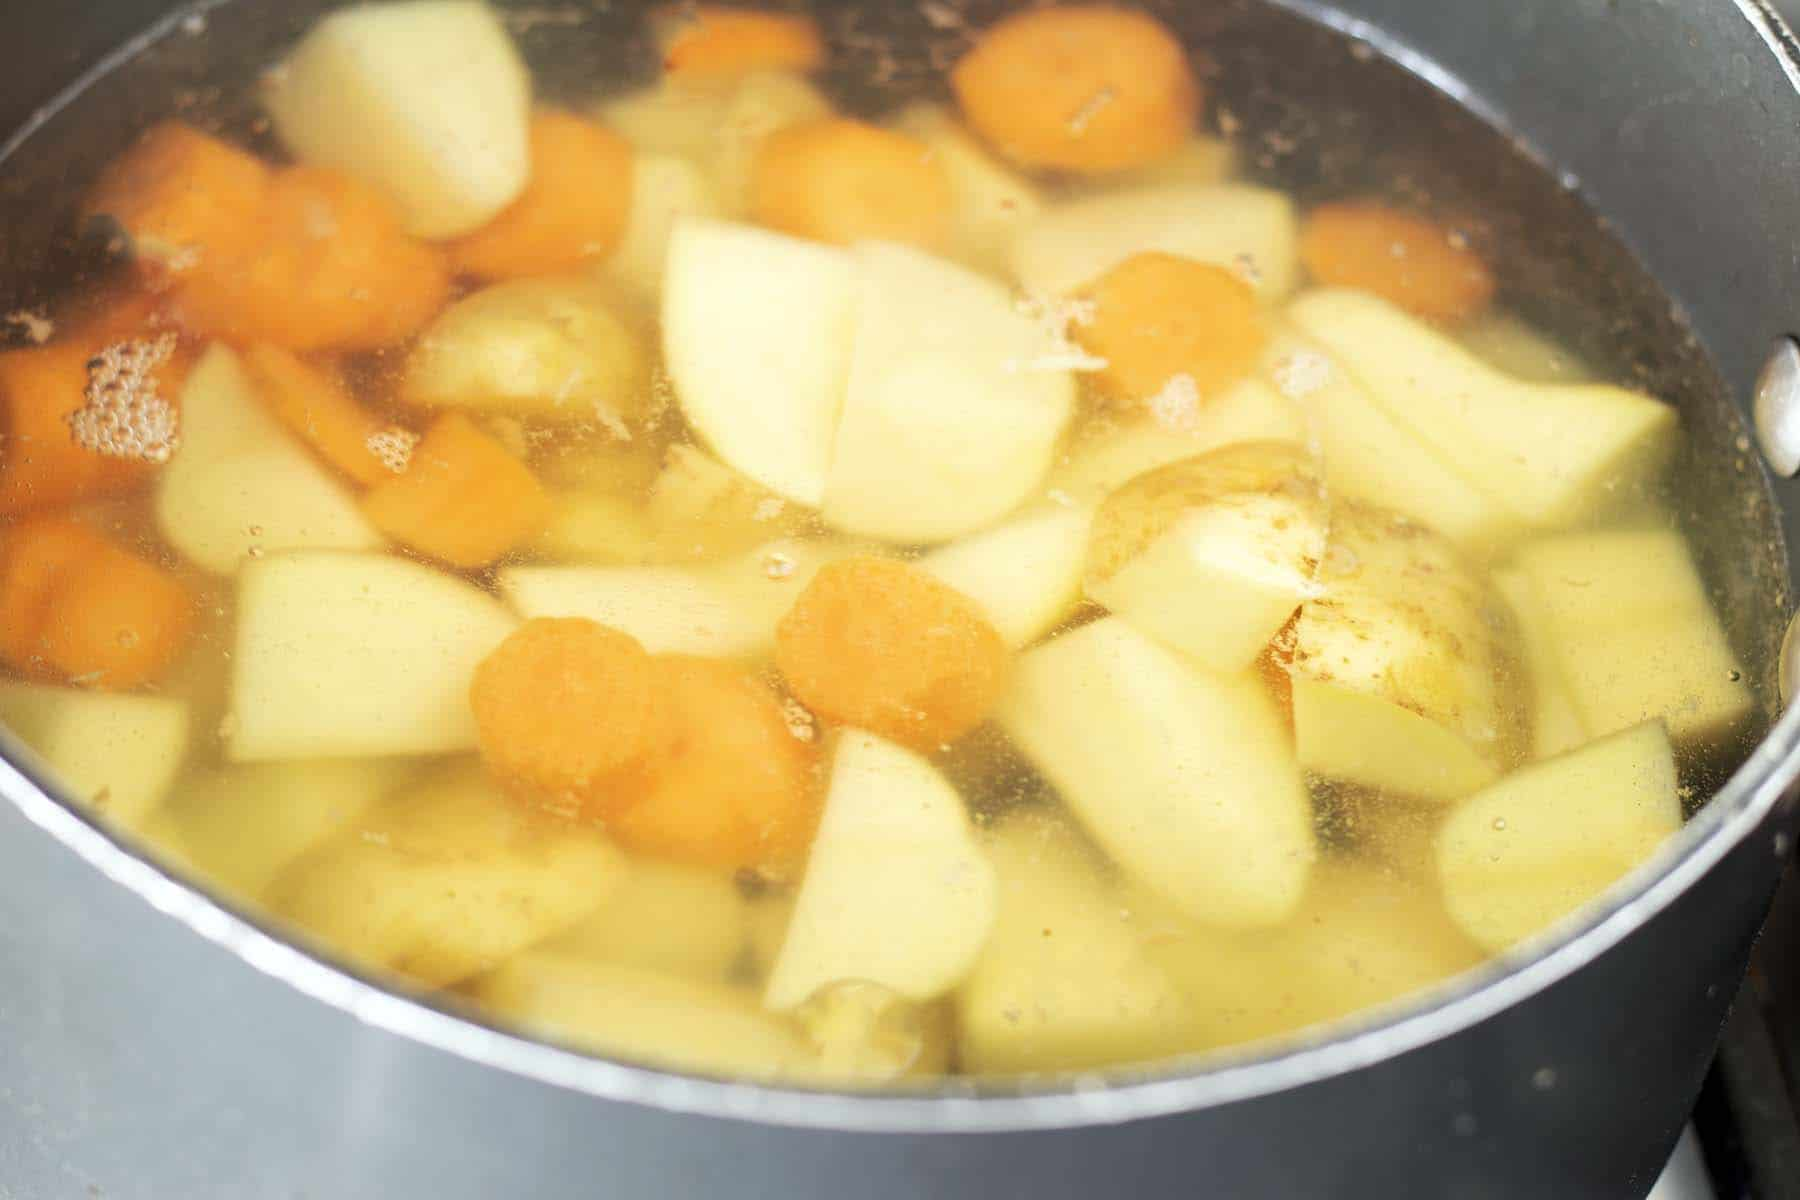 potatoes and carrots cooking in pan